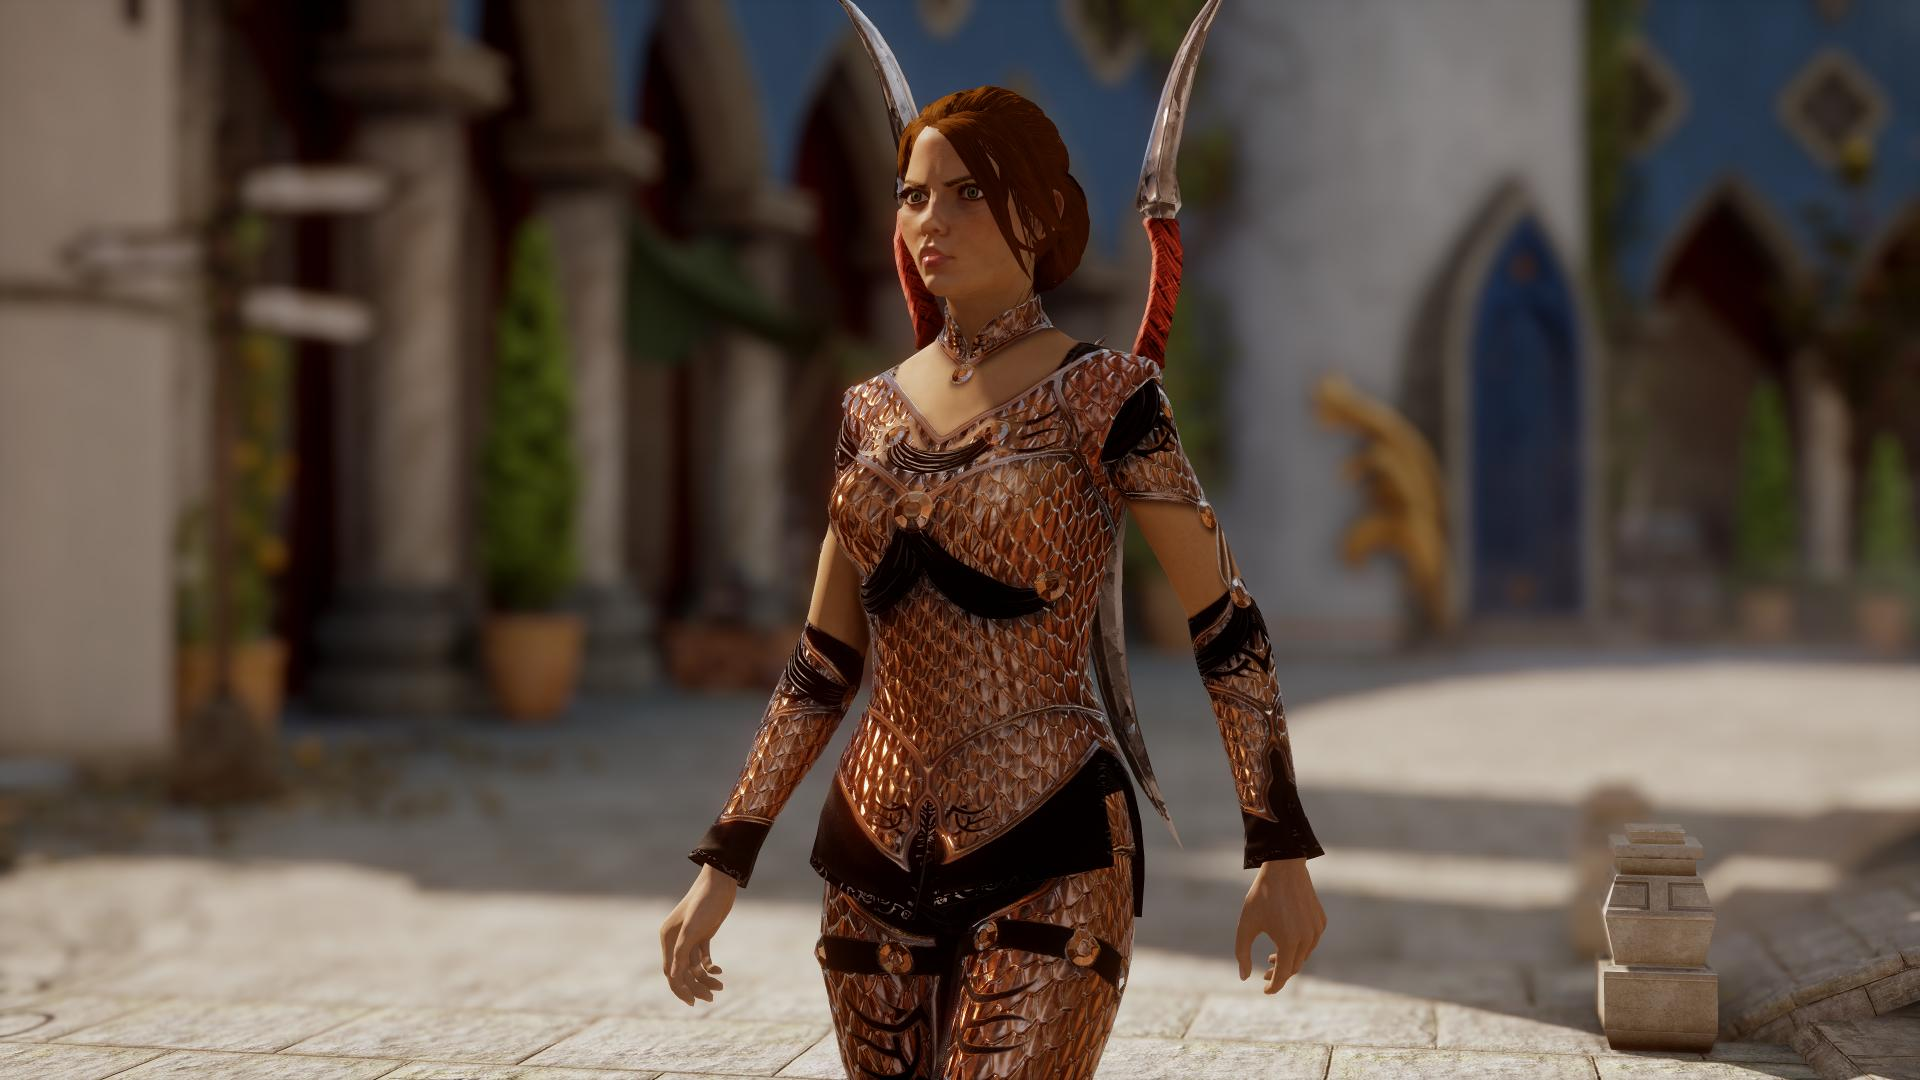 Dragon age inquisition gold mod how to find steroids